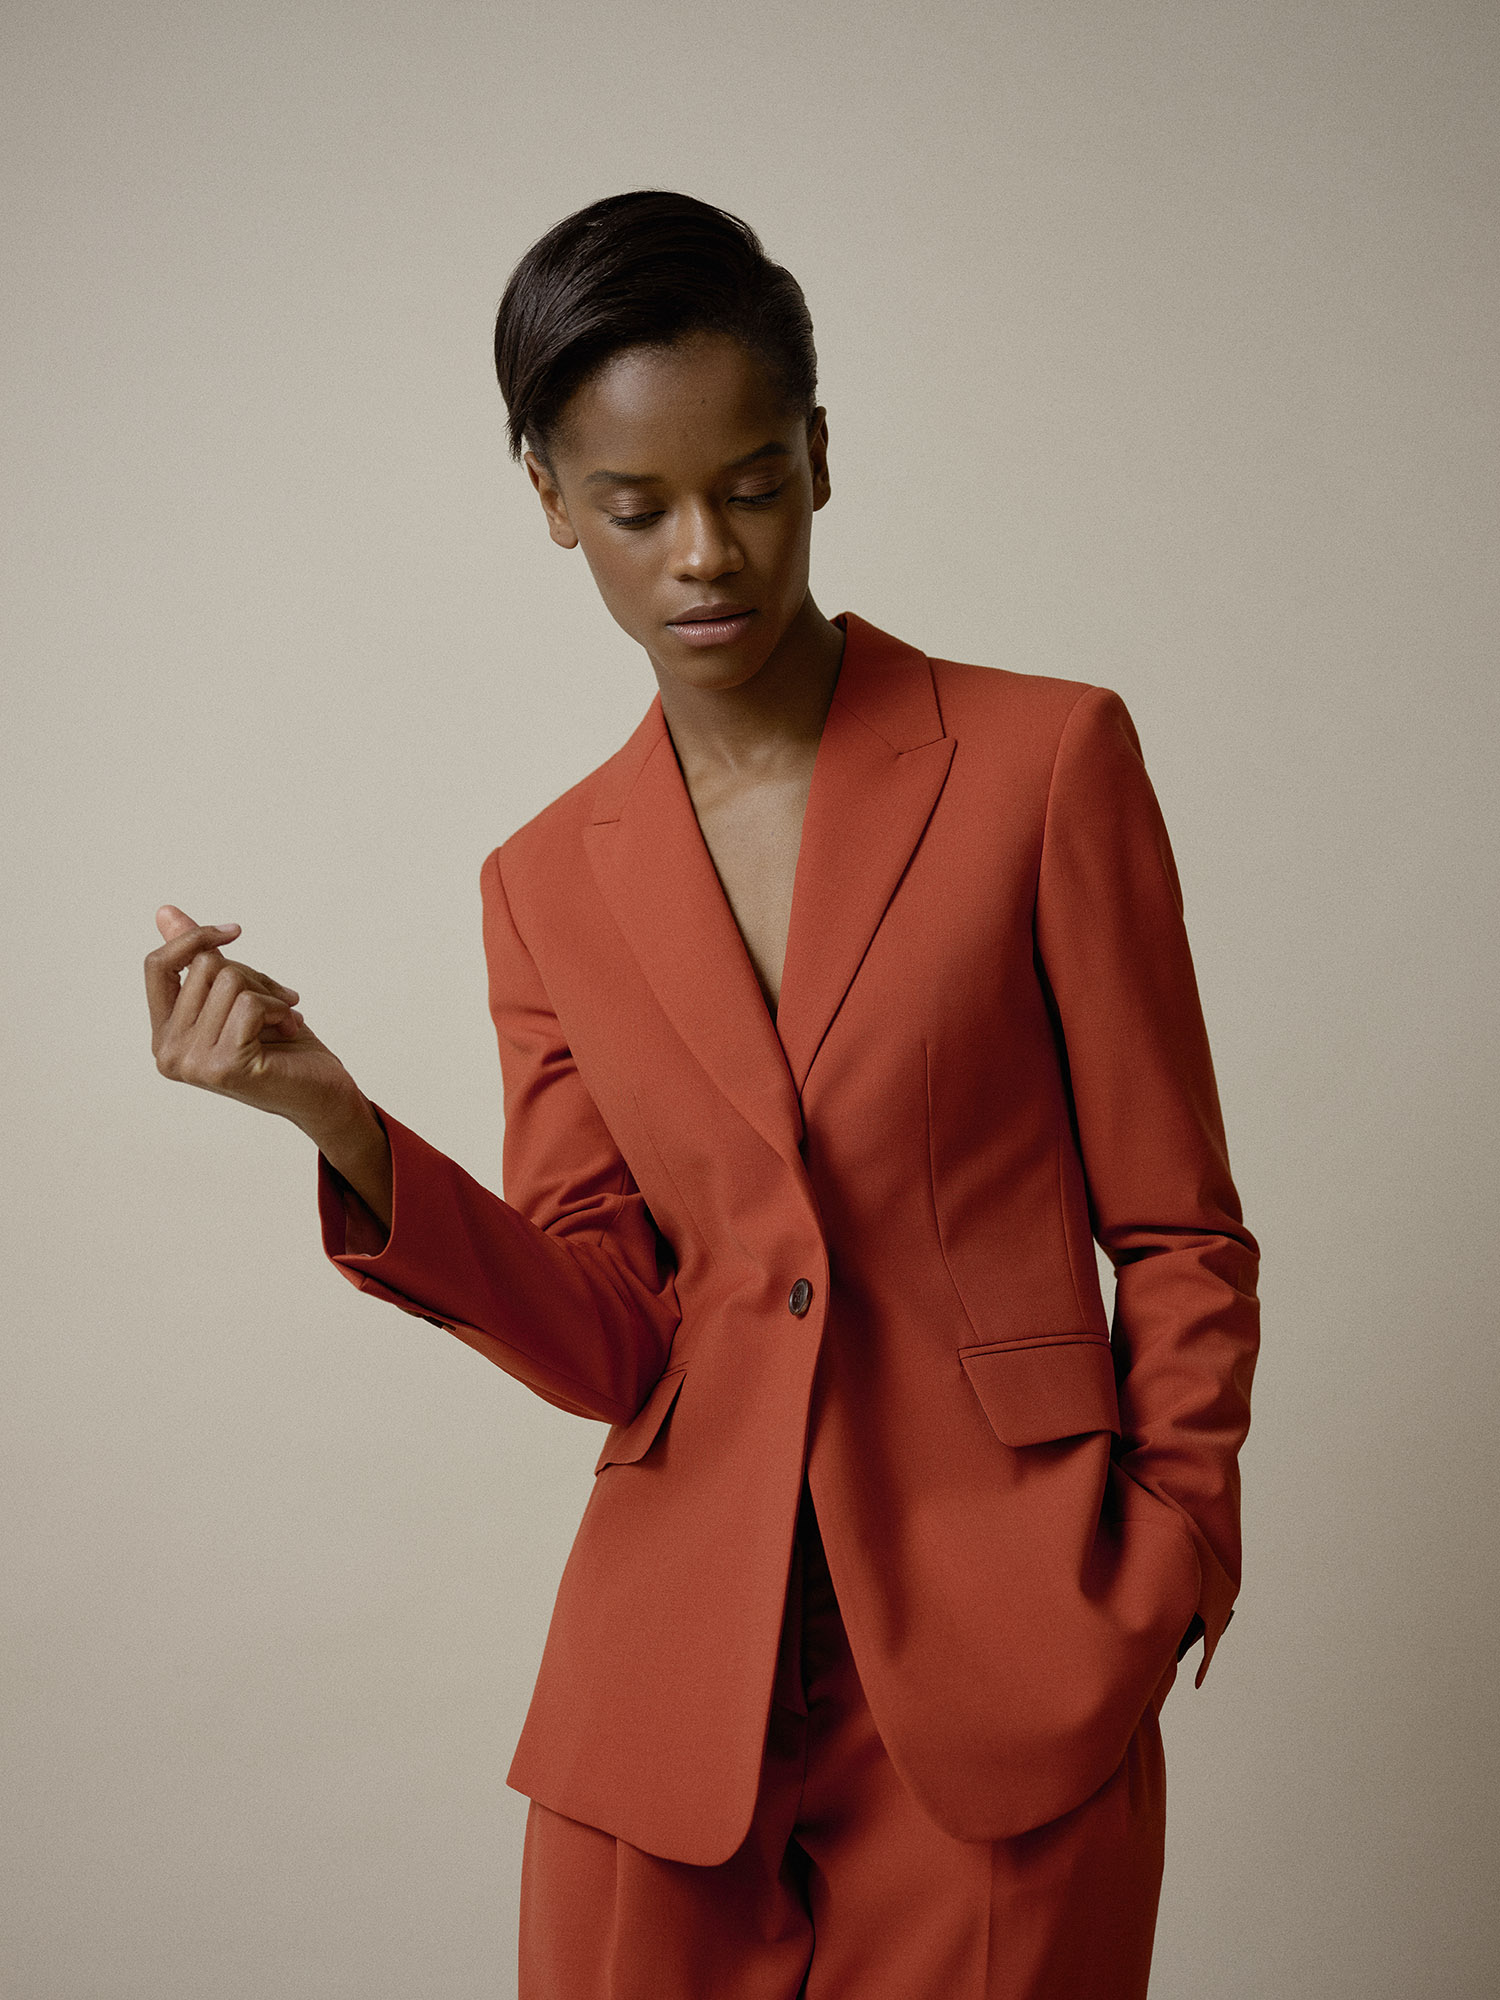 181119_ES_Letitia Wright_04_054_FINAL_RGB.jpg